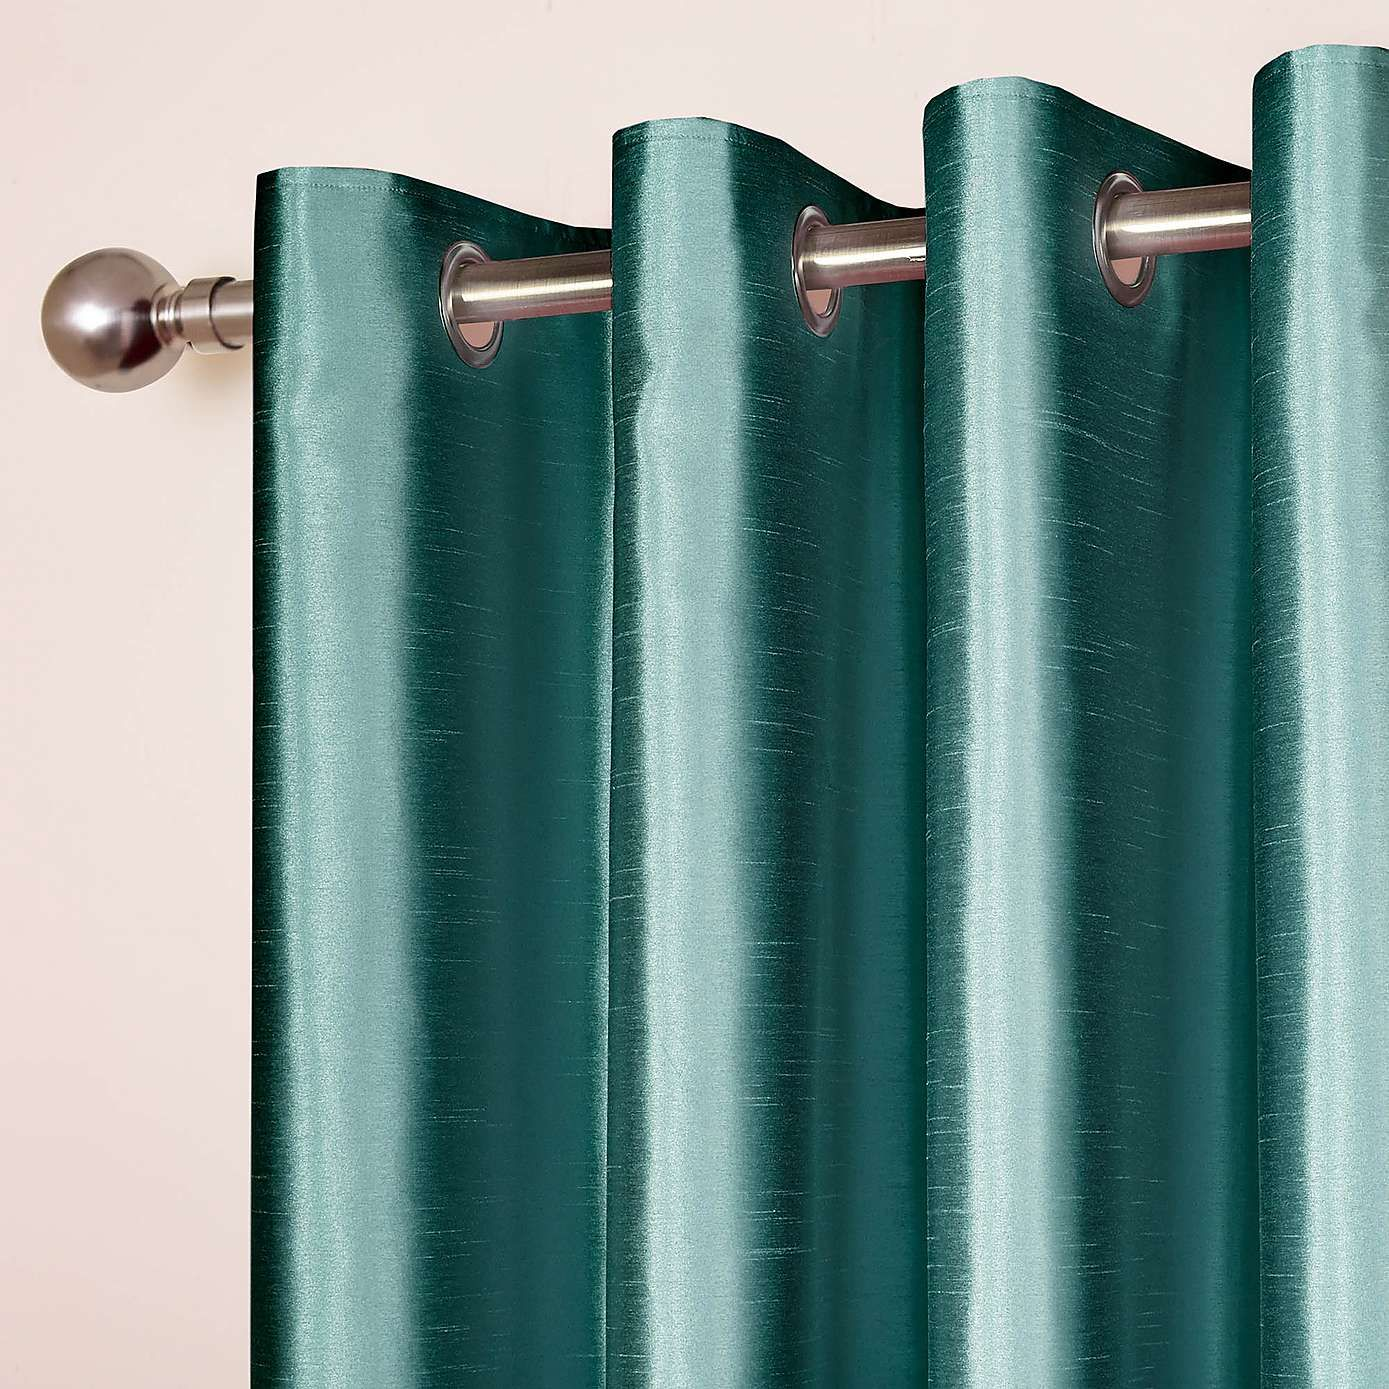 Teal Silver Curtains Faux Silk Teal Blackout Eyelet Curtains Harry Potter Ravenclaw